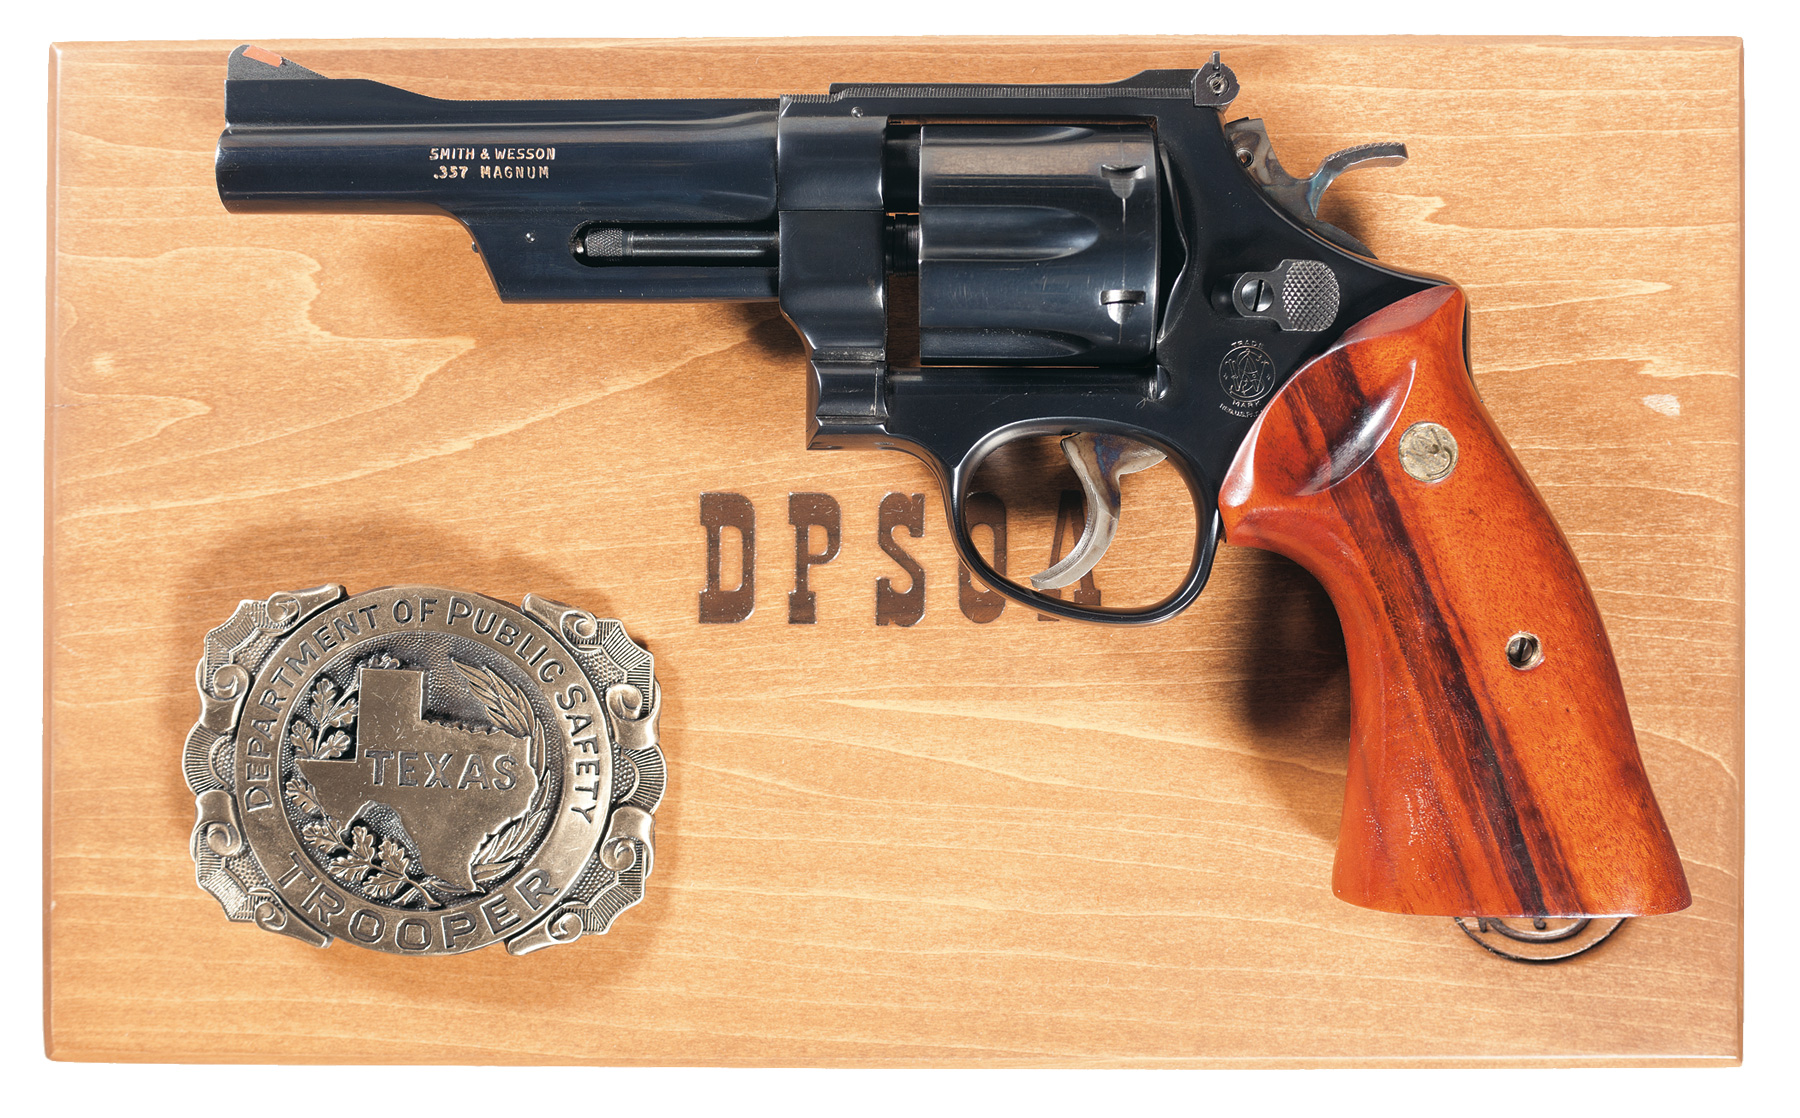 In 1935 the .357 Magnum was the most powerful revolver cartridge in the world. (Picture courtesy Rock Island Auction).